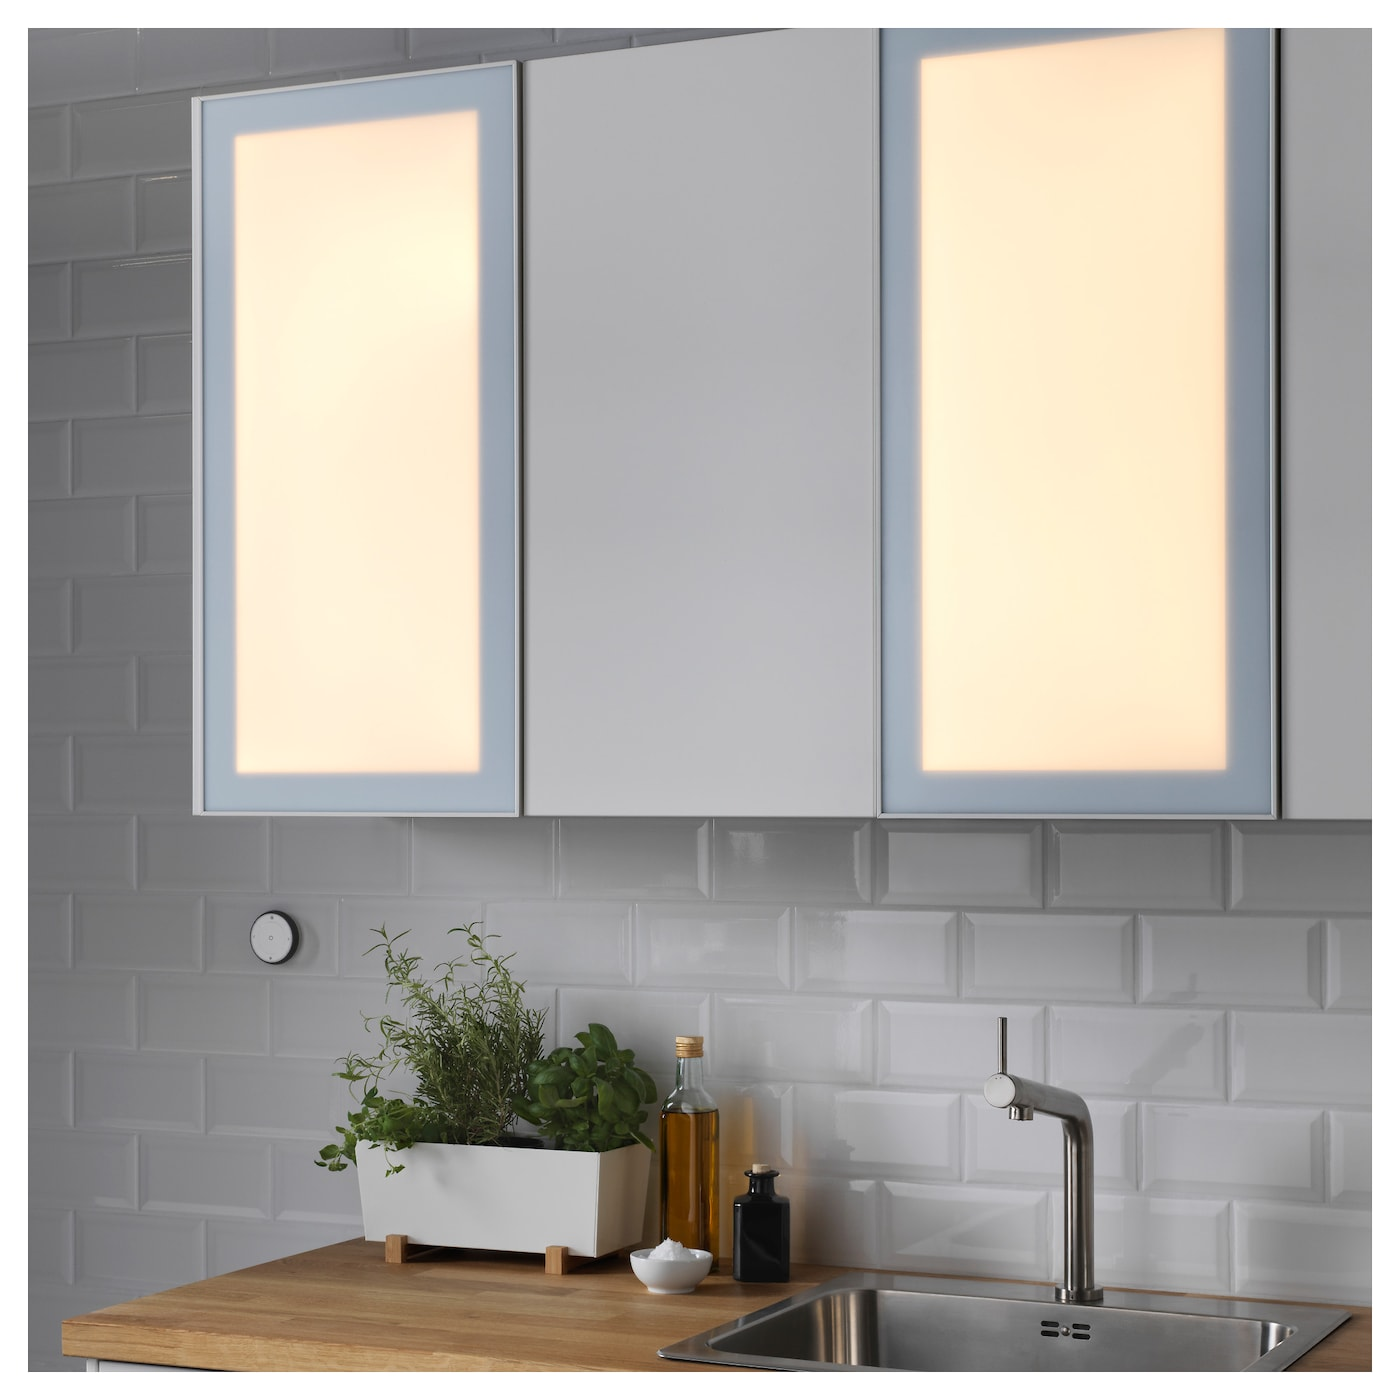 jormlien led light door w wireless control dimmable white